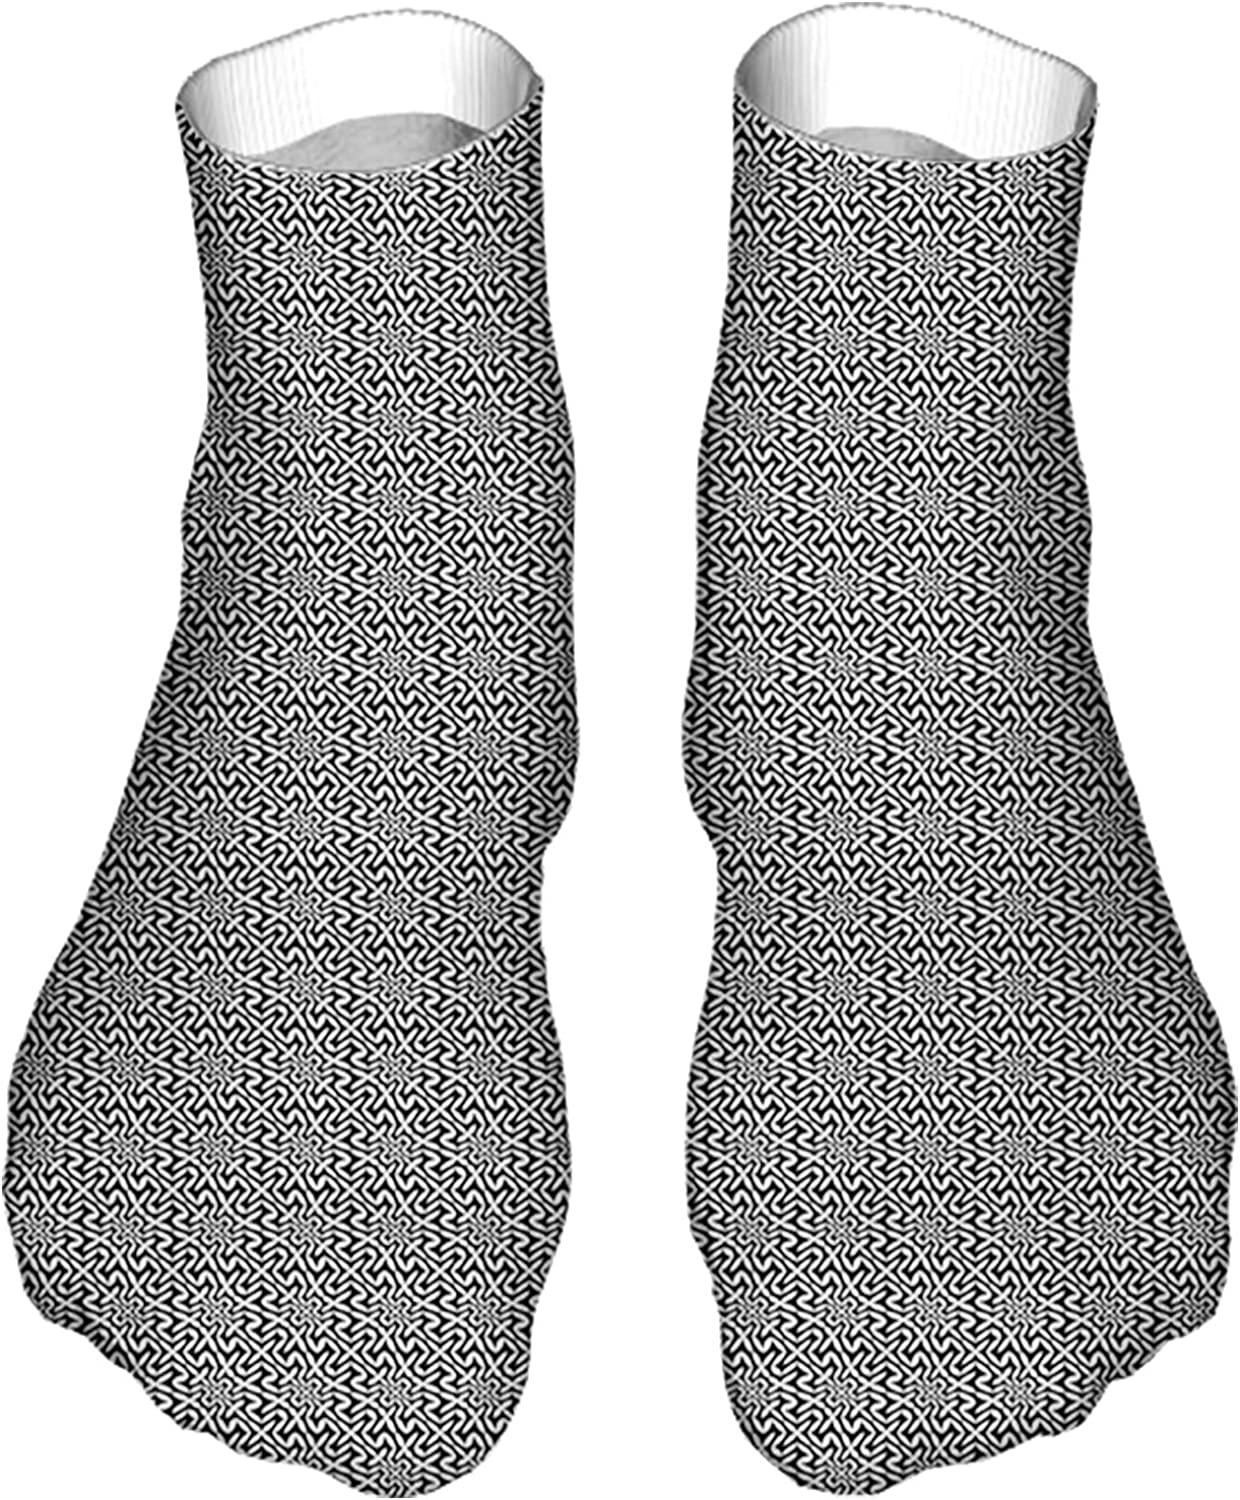 Women's Colorful Patterned Unisex Low Cut/No Show Socks,Hipster Abstract Geometry Pattern White Leaf-Like Oval Shap